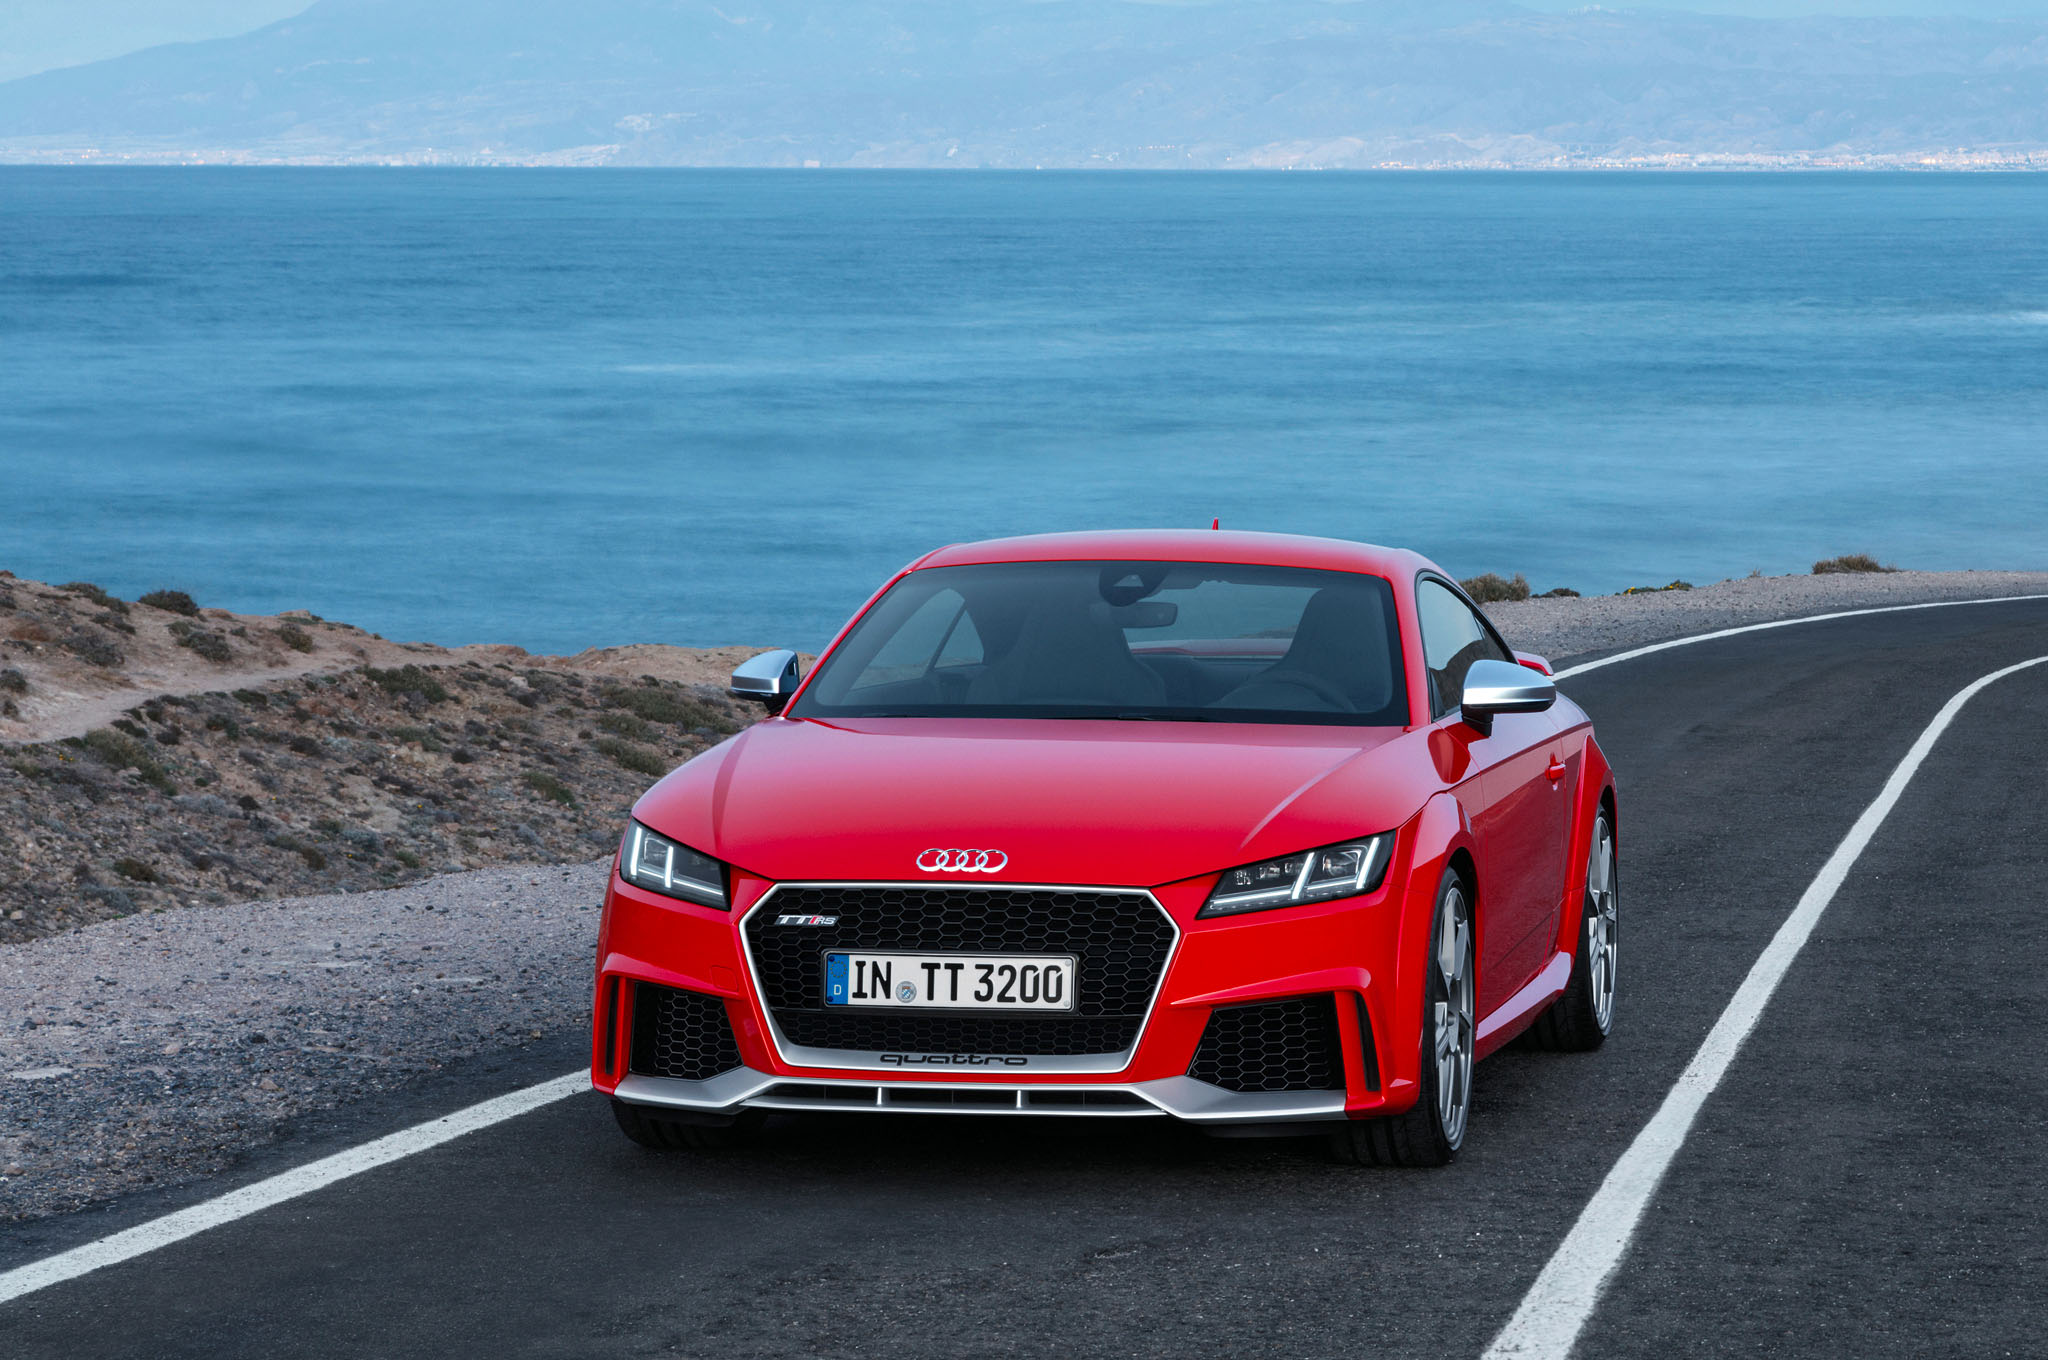 2017 Audi TT RS Coupe High-Definition Wallpaper | HD Car ...